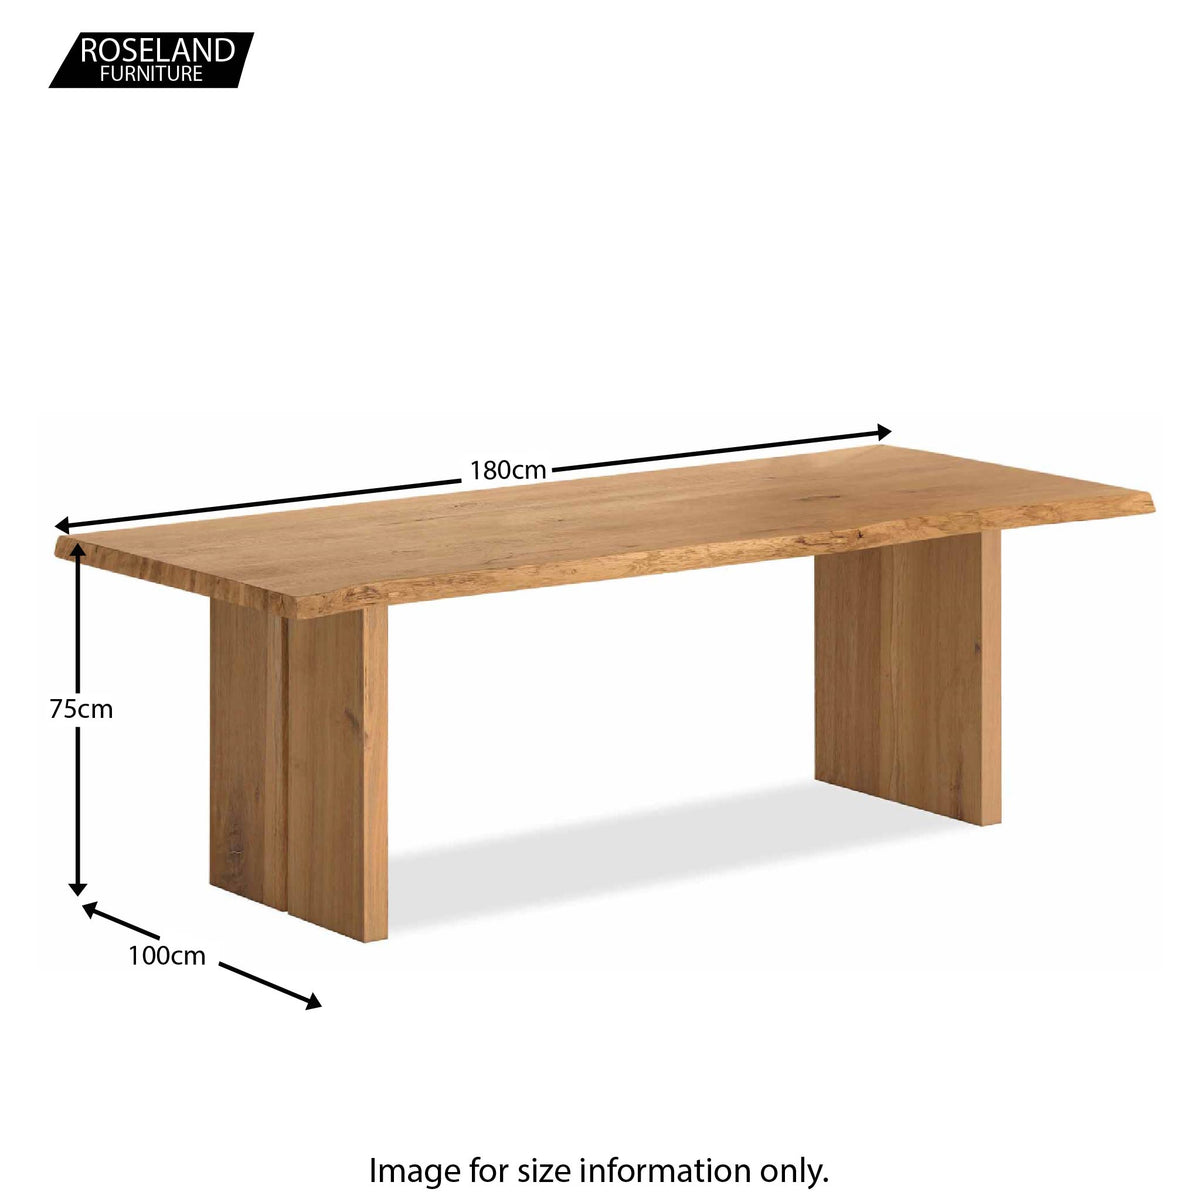 Dimensions - Oak Mill 180cm Dining Table - Wood Base - Waxed Oak